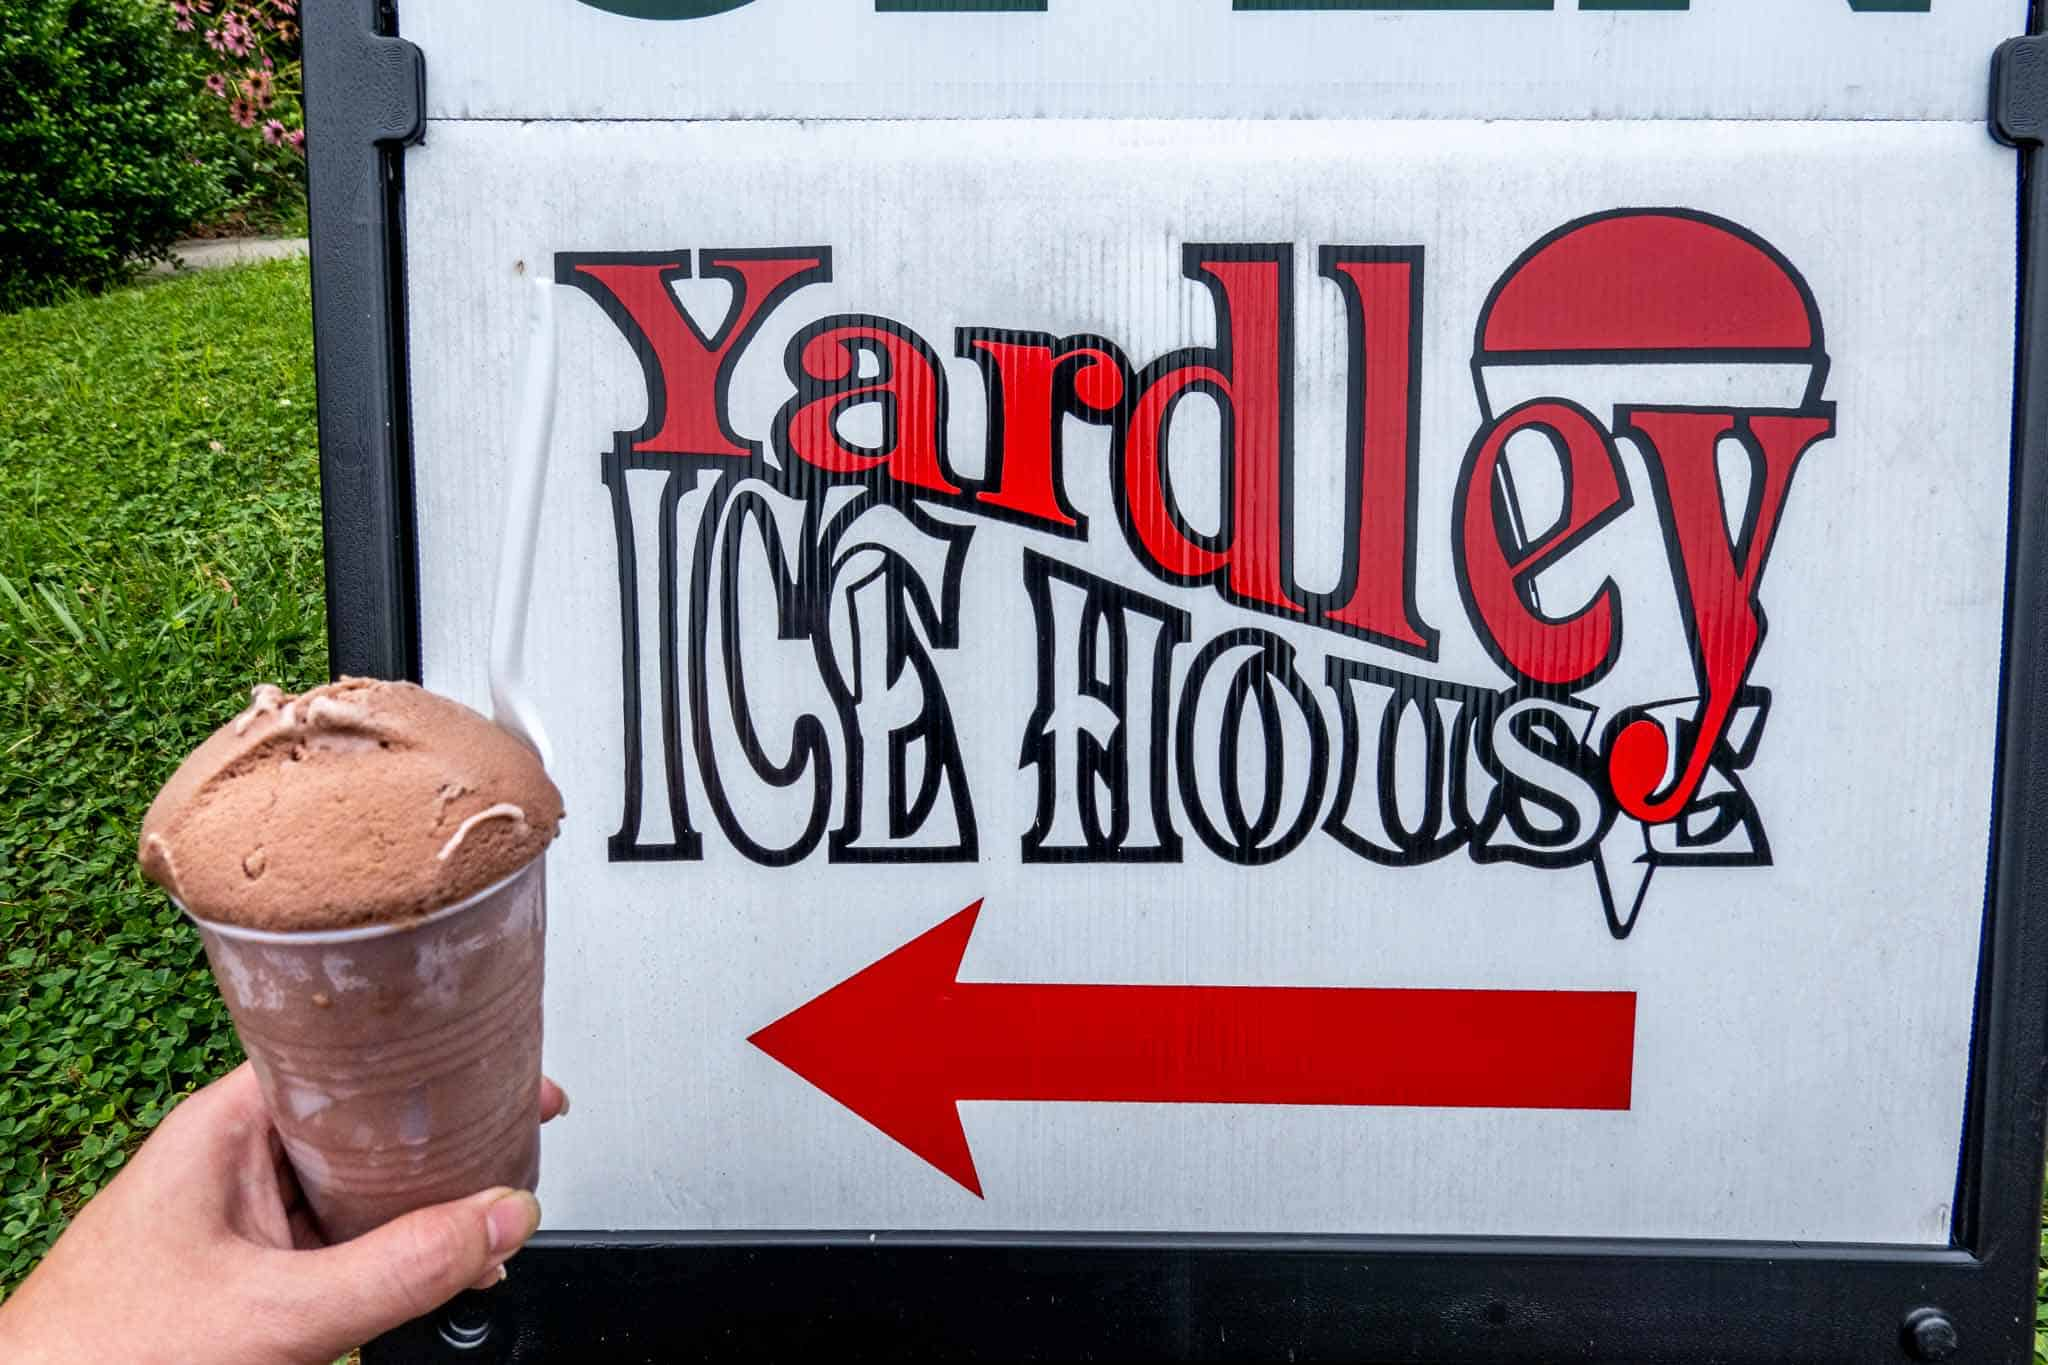 Cup of chocolate water ice by sign for Yardley Ice House